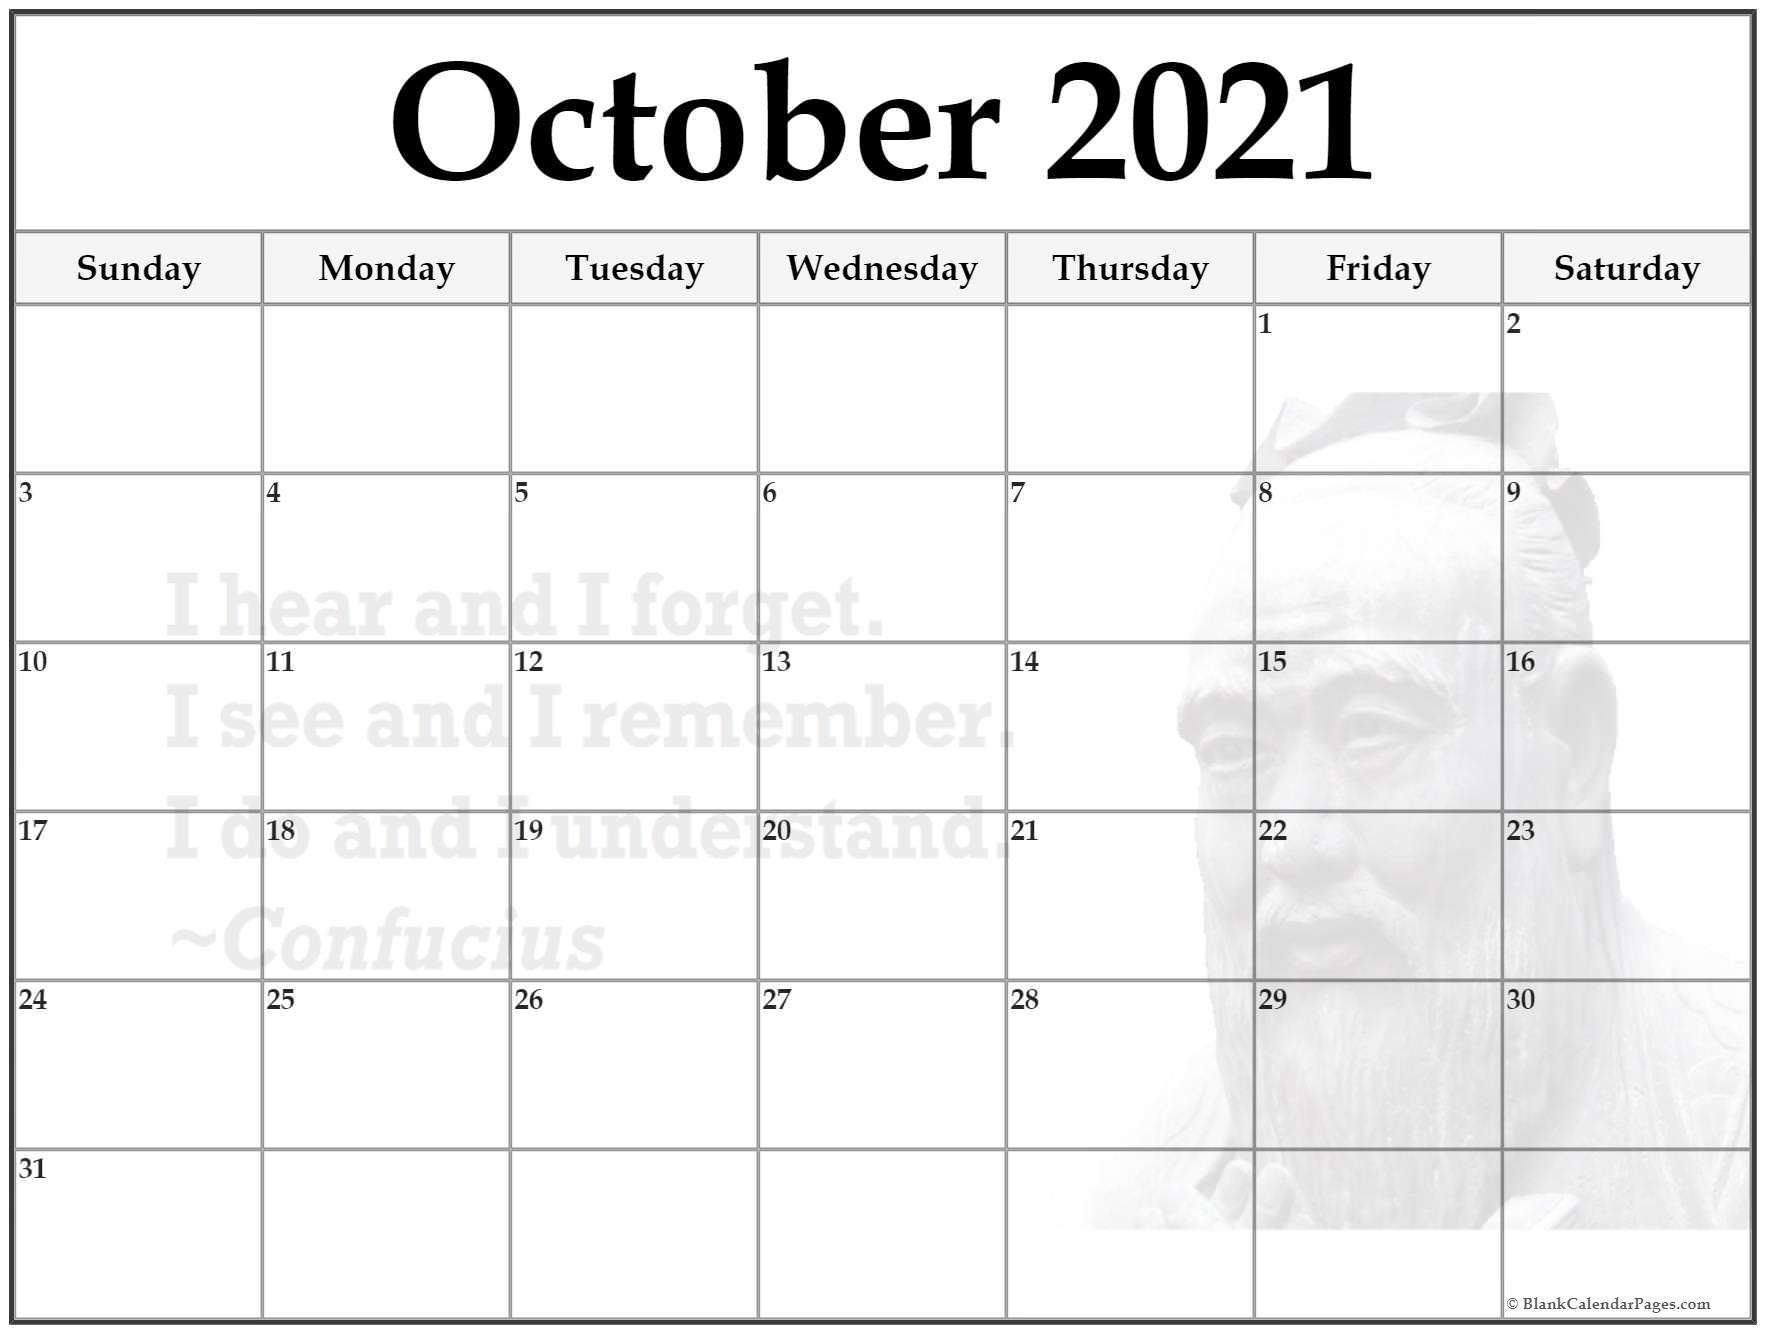 October 2021 monthly calendar template. I hear and I forget.I see and I remember.I do and I understand.~Confucius